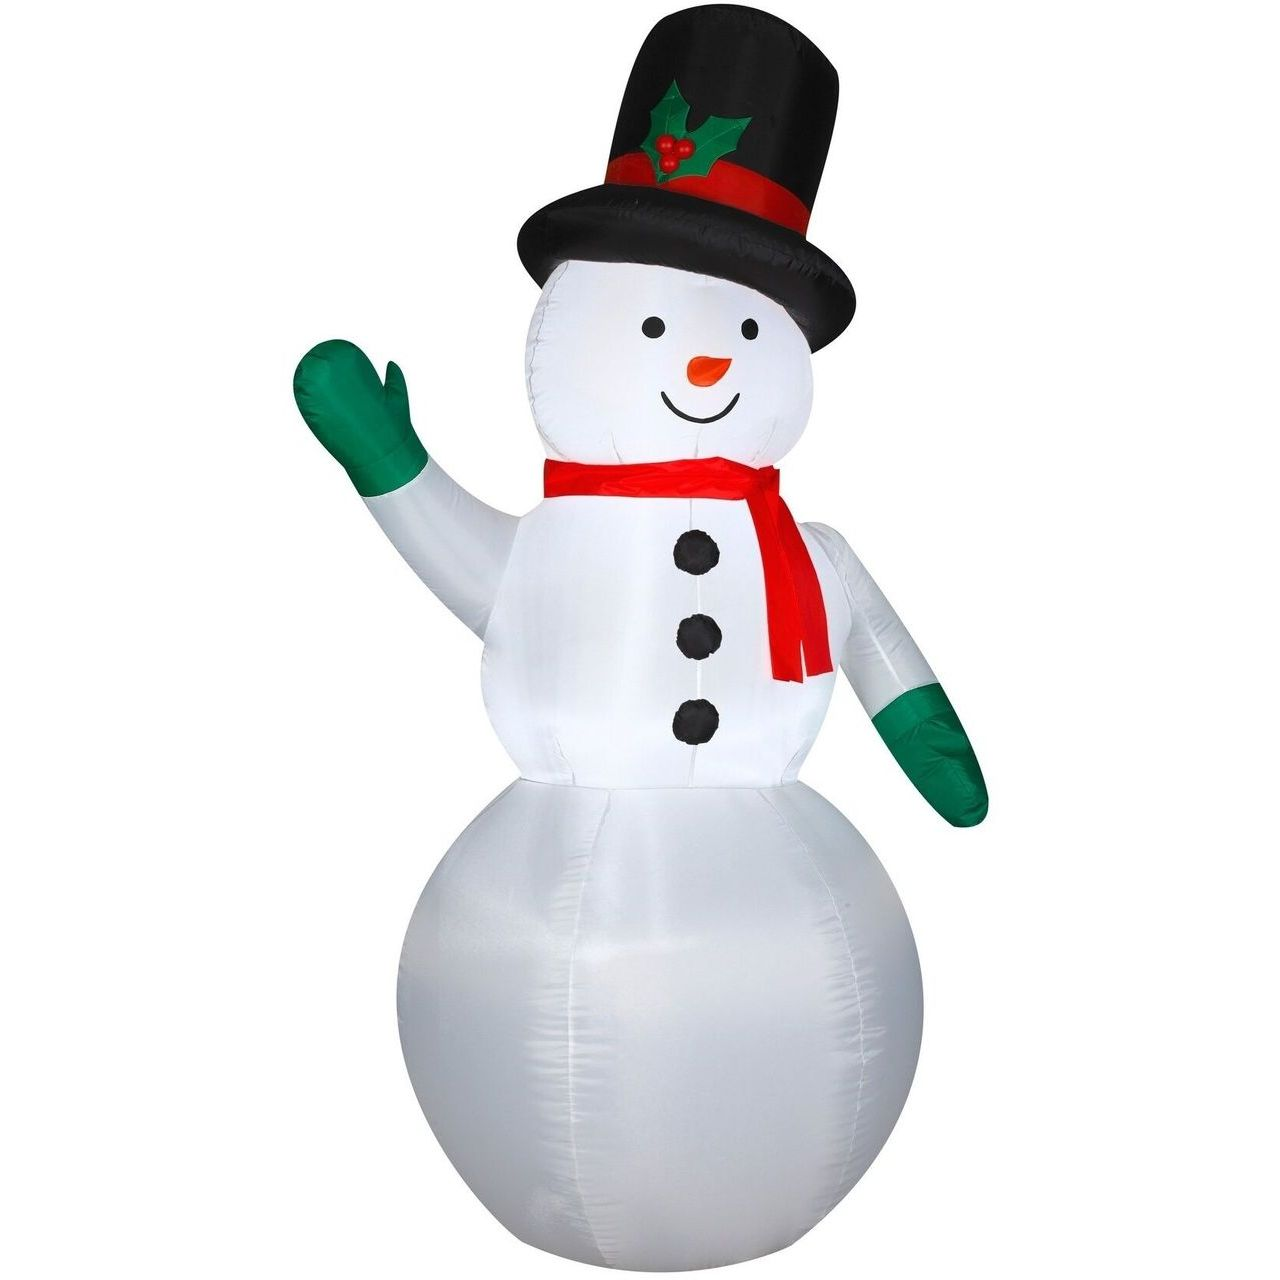 Gemmy Snowman Inflatable Yard Decor